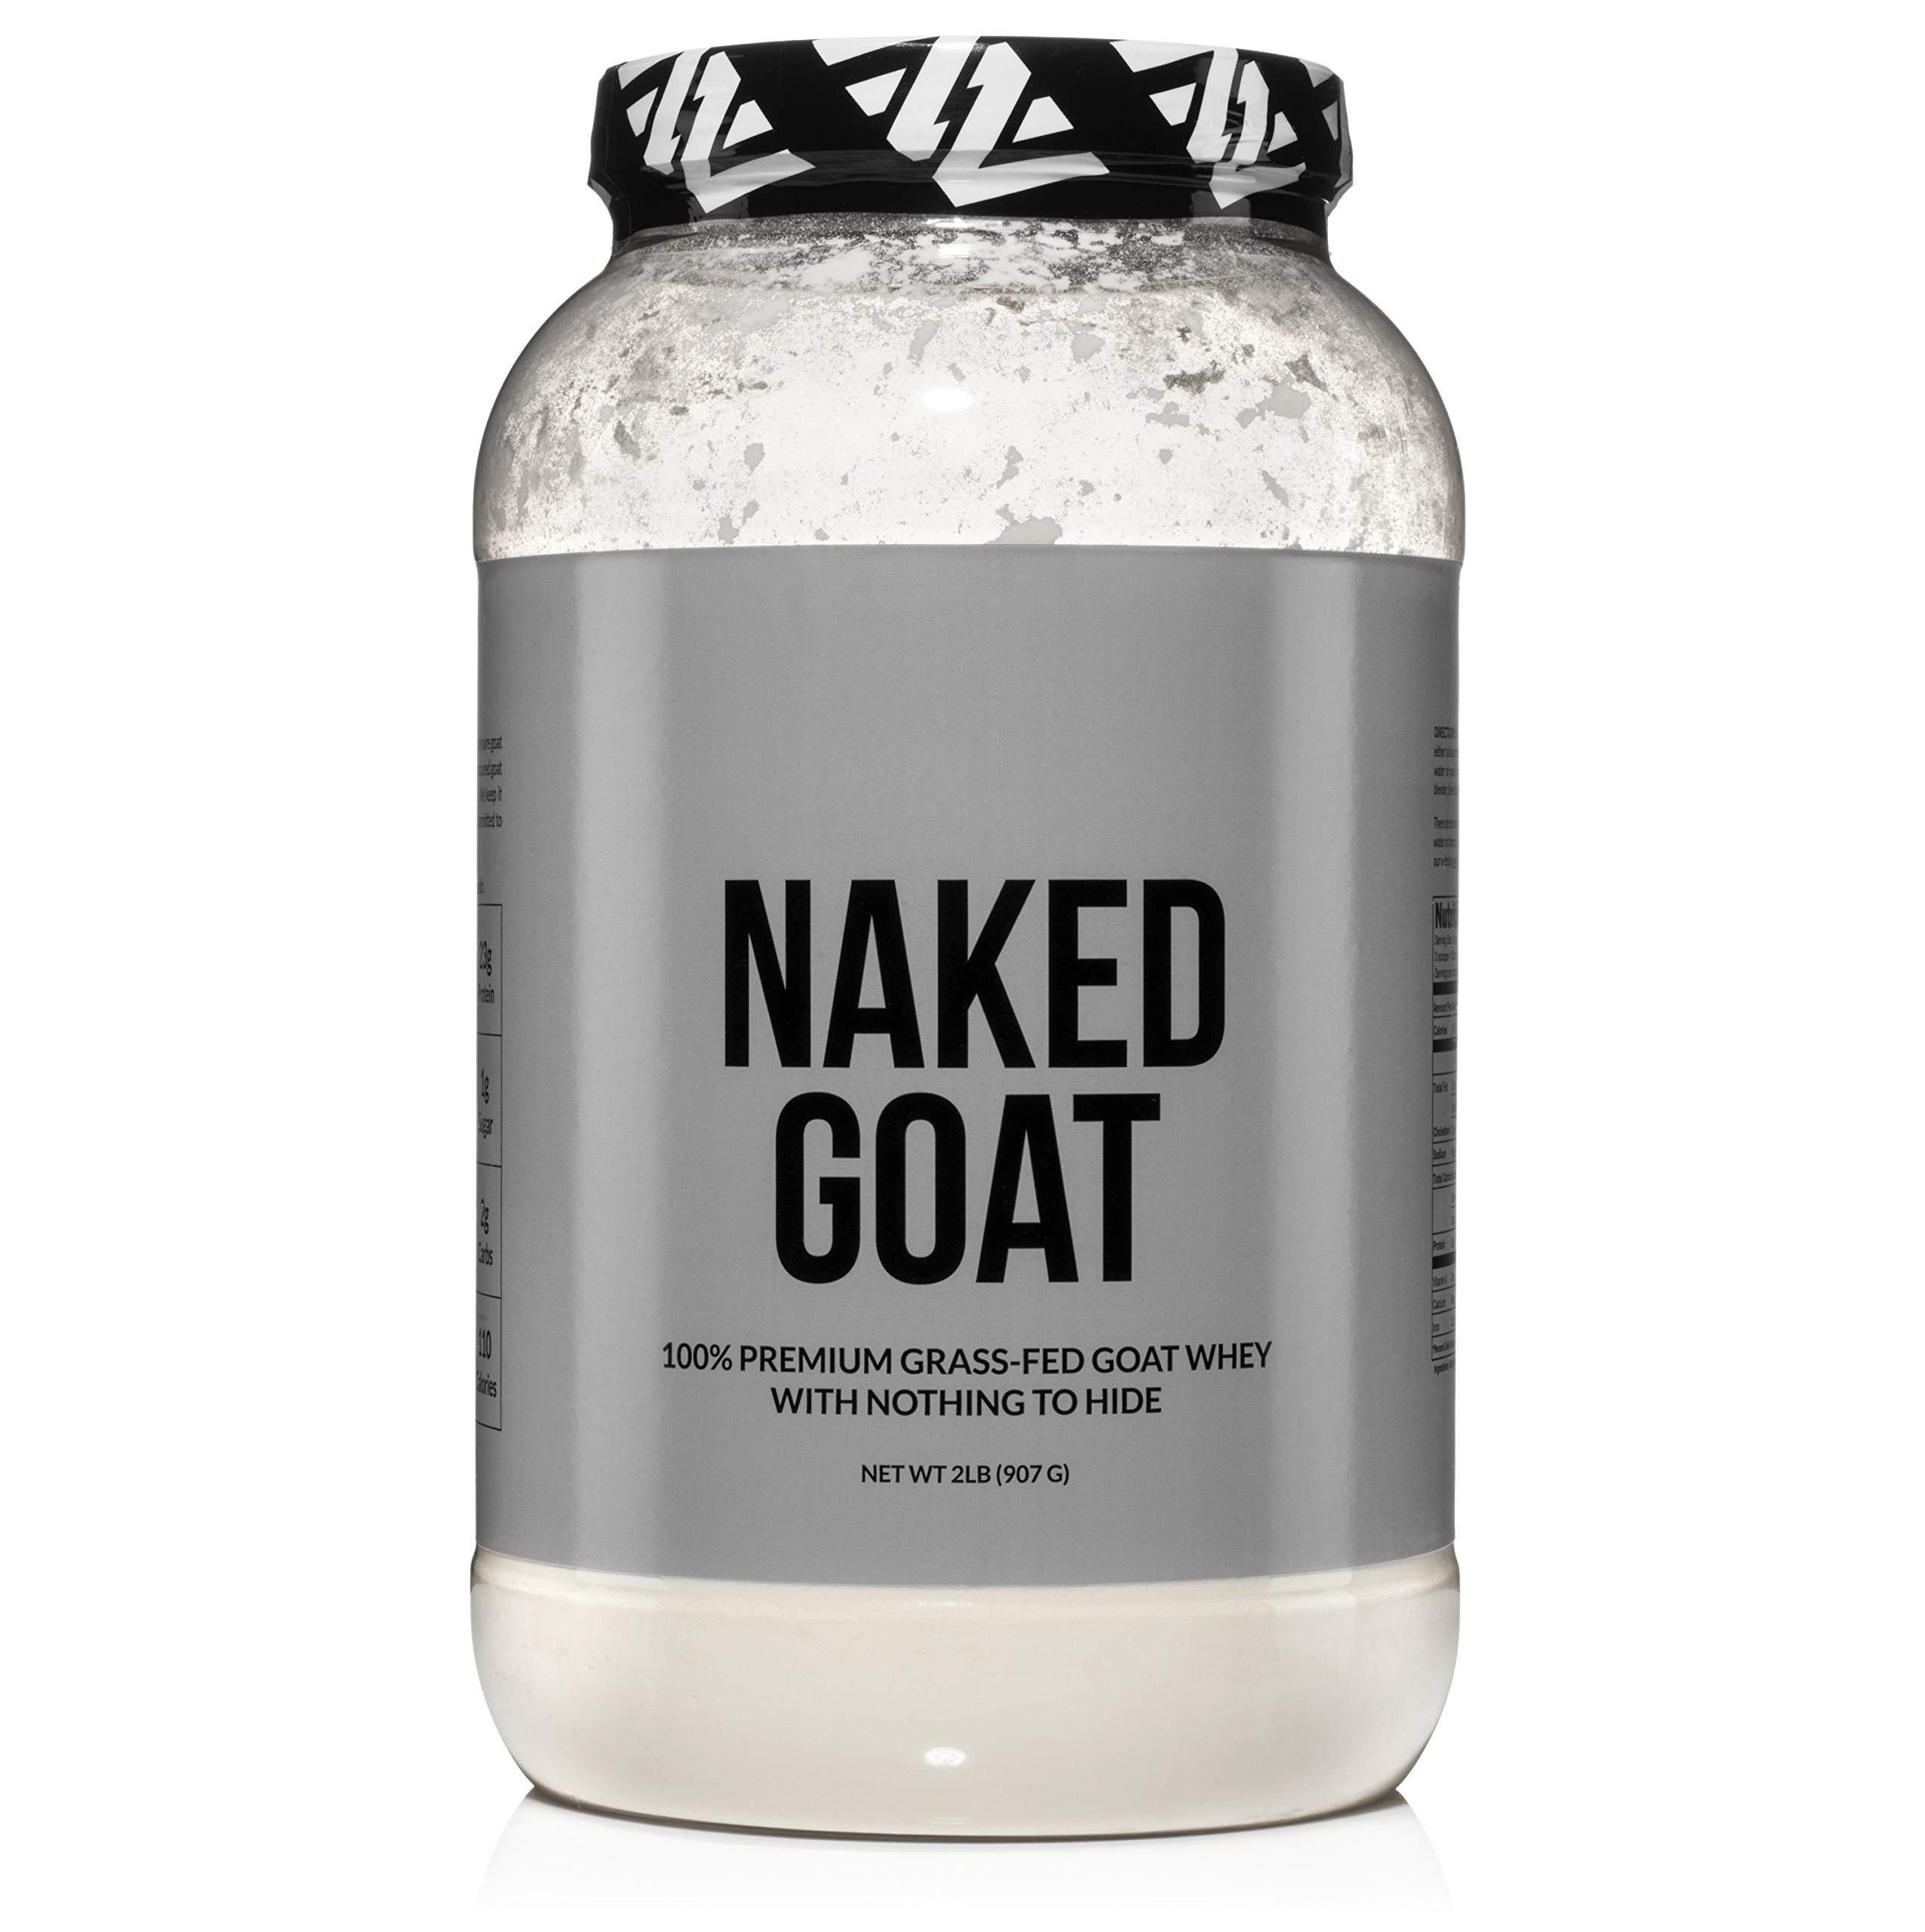 NAKED GOAT - 100% Pasture Fed Goat Whey Protein Powder from Small-Herd Wisconsin Dairies, 2lb Bulk, GMO Free, Soy Free. Easy to Digest - All Natural - 23 Grams of Protein - 76 Servings